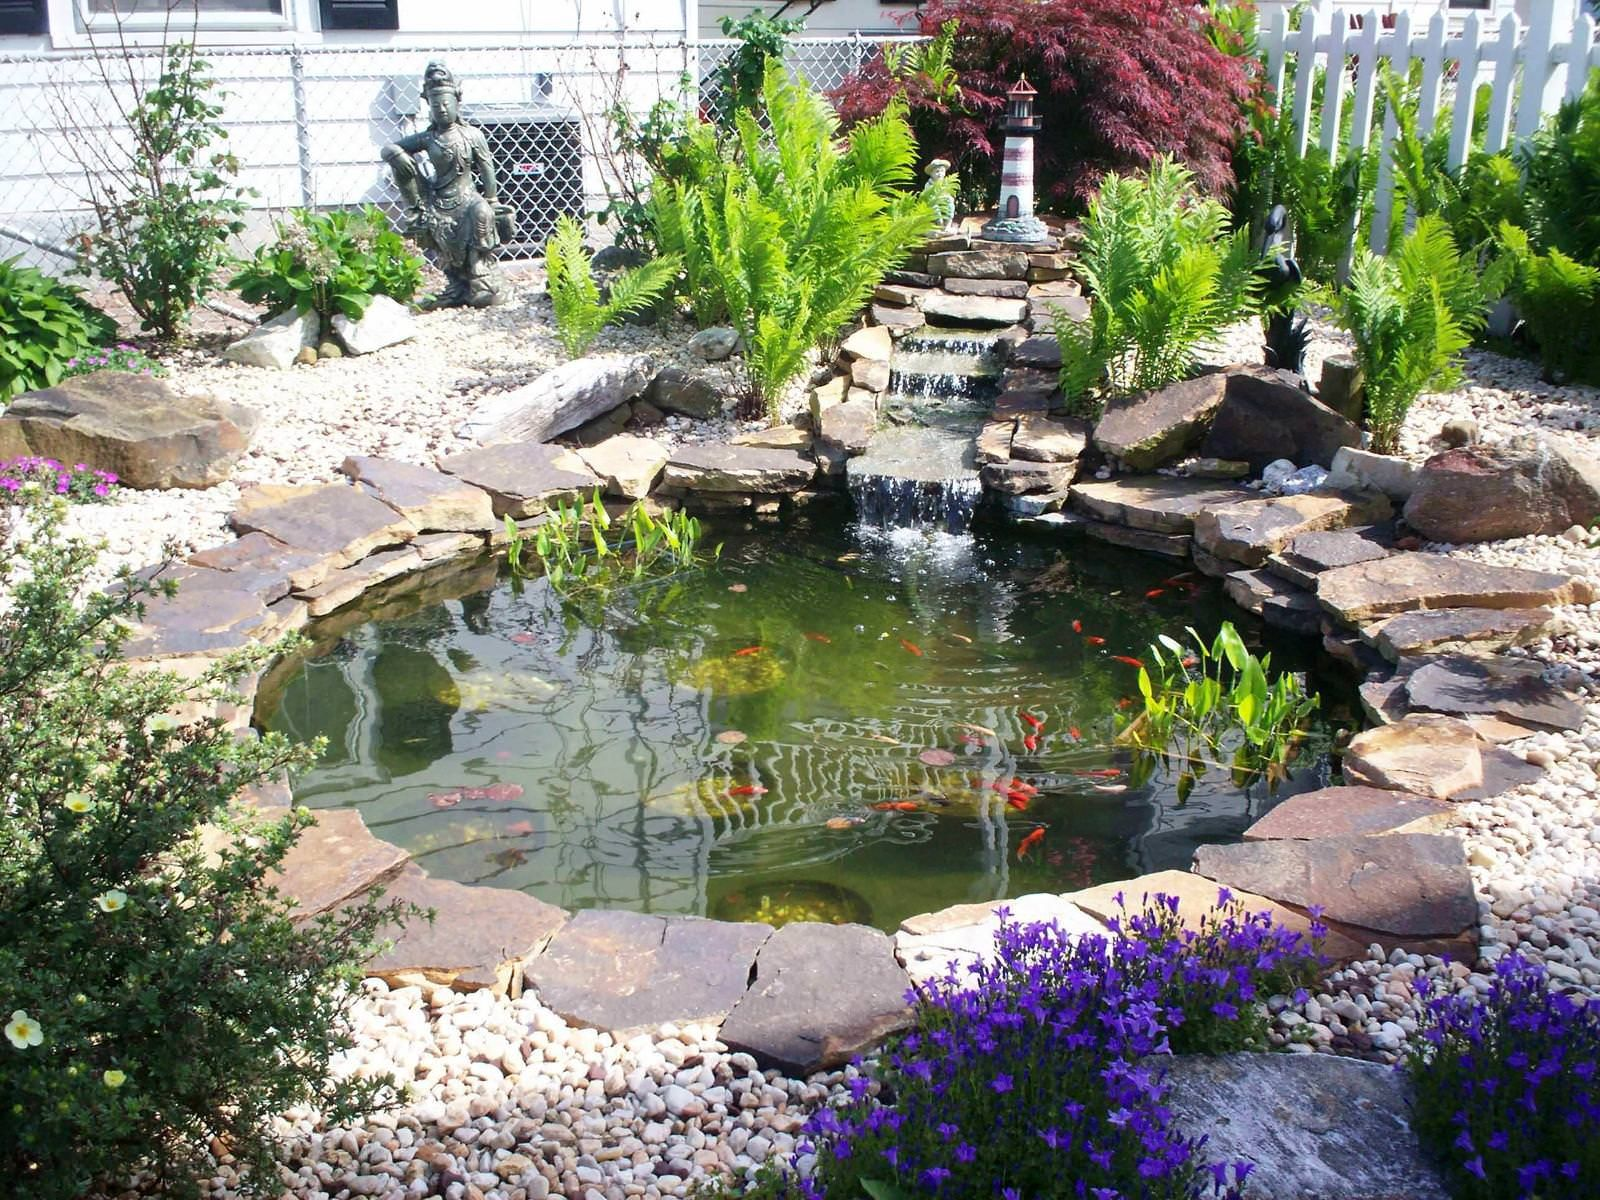 Small garden or backyard aquarium ideas practic ideas for Pond and garden